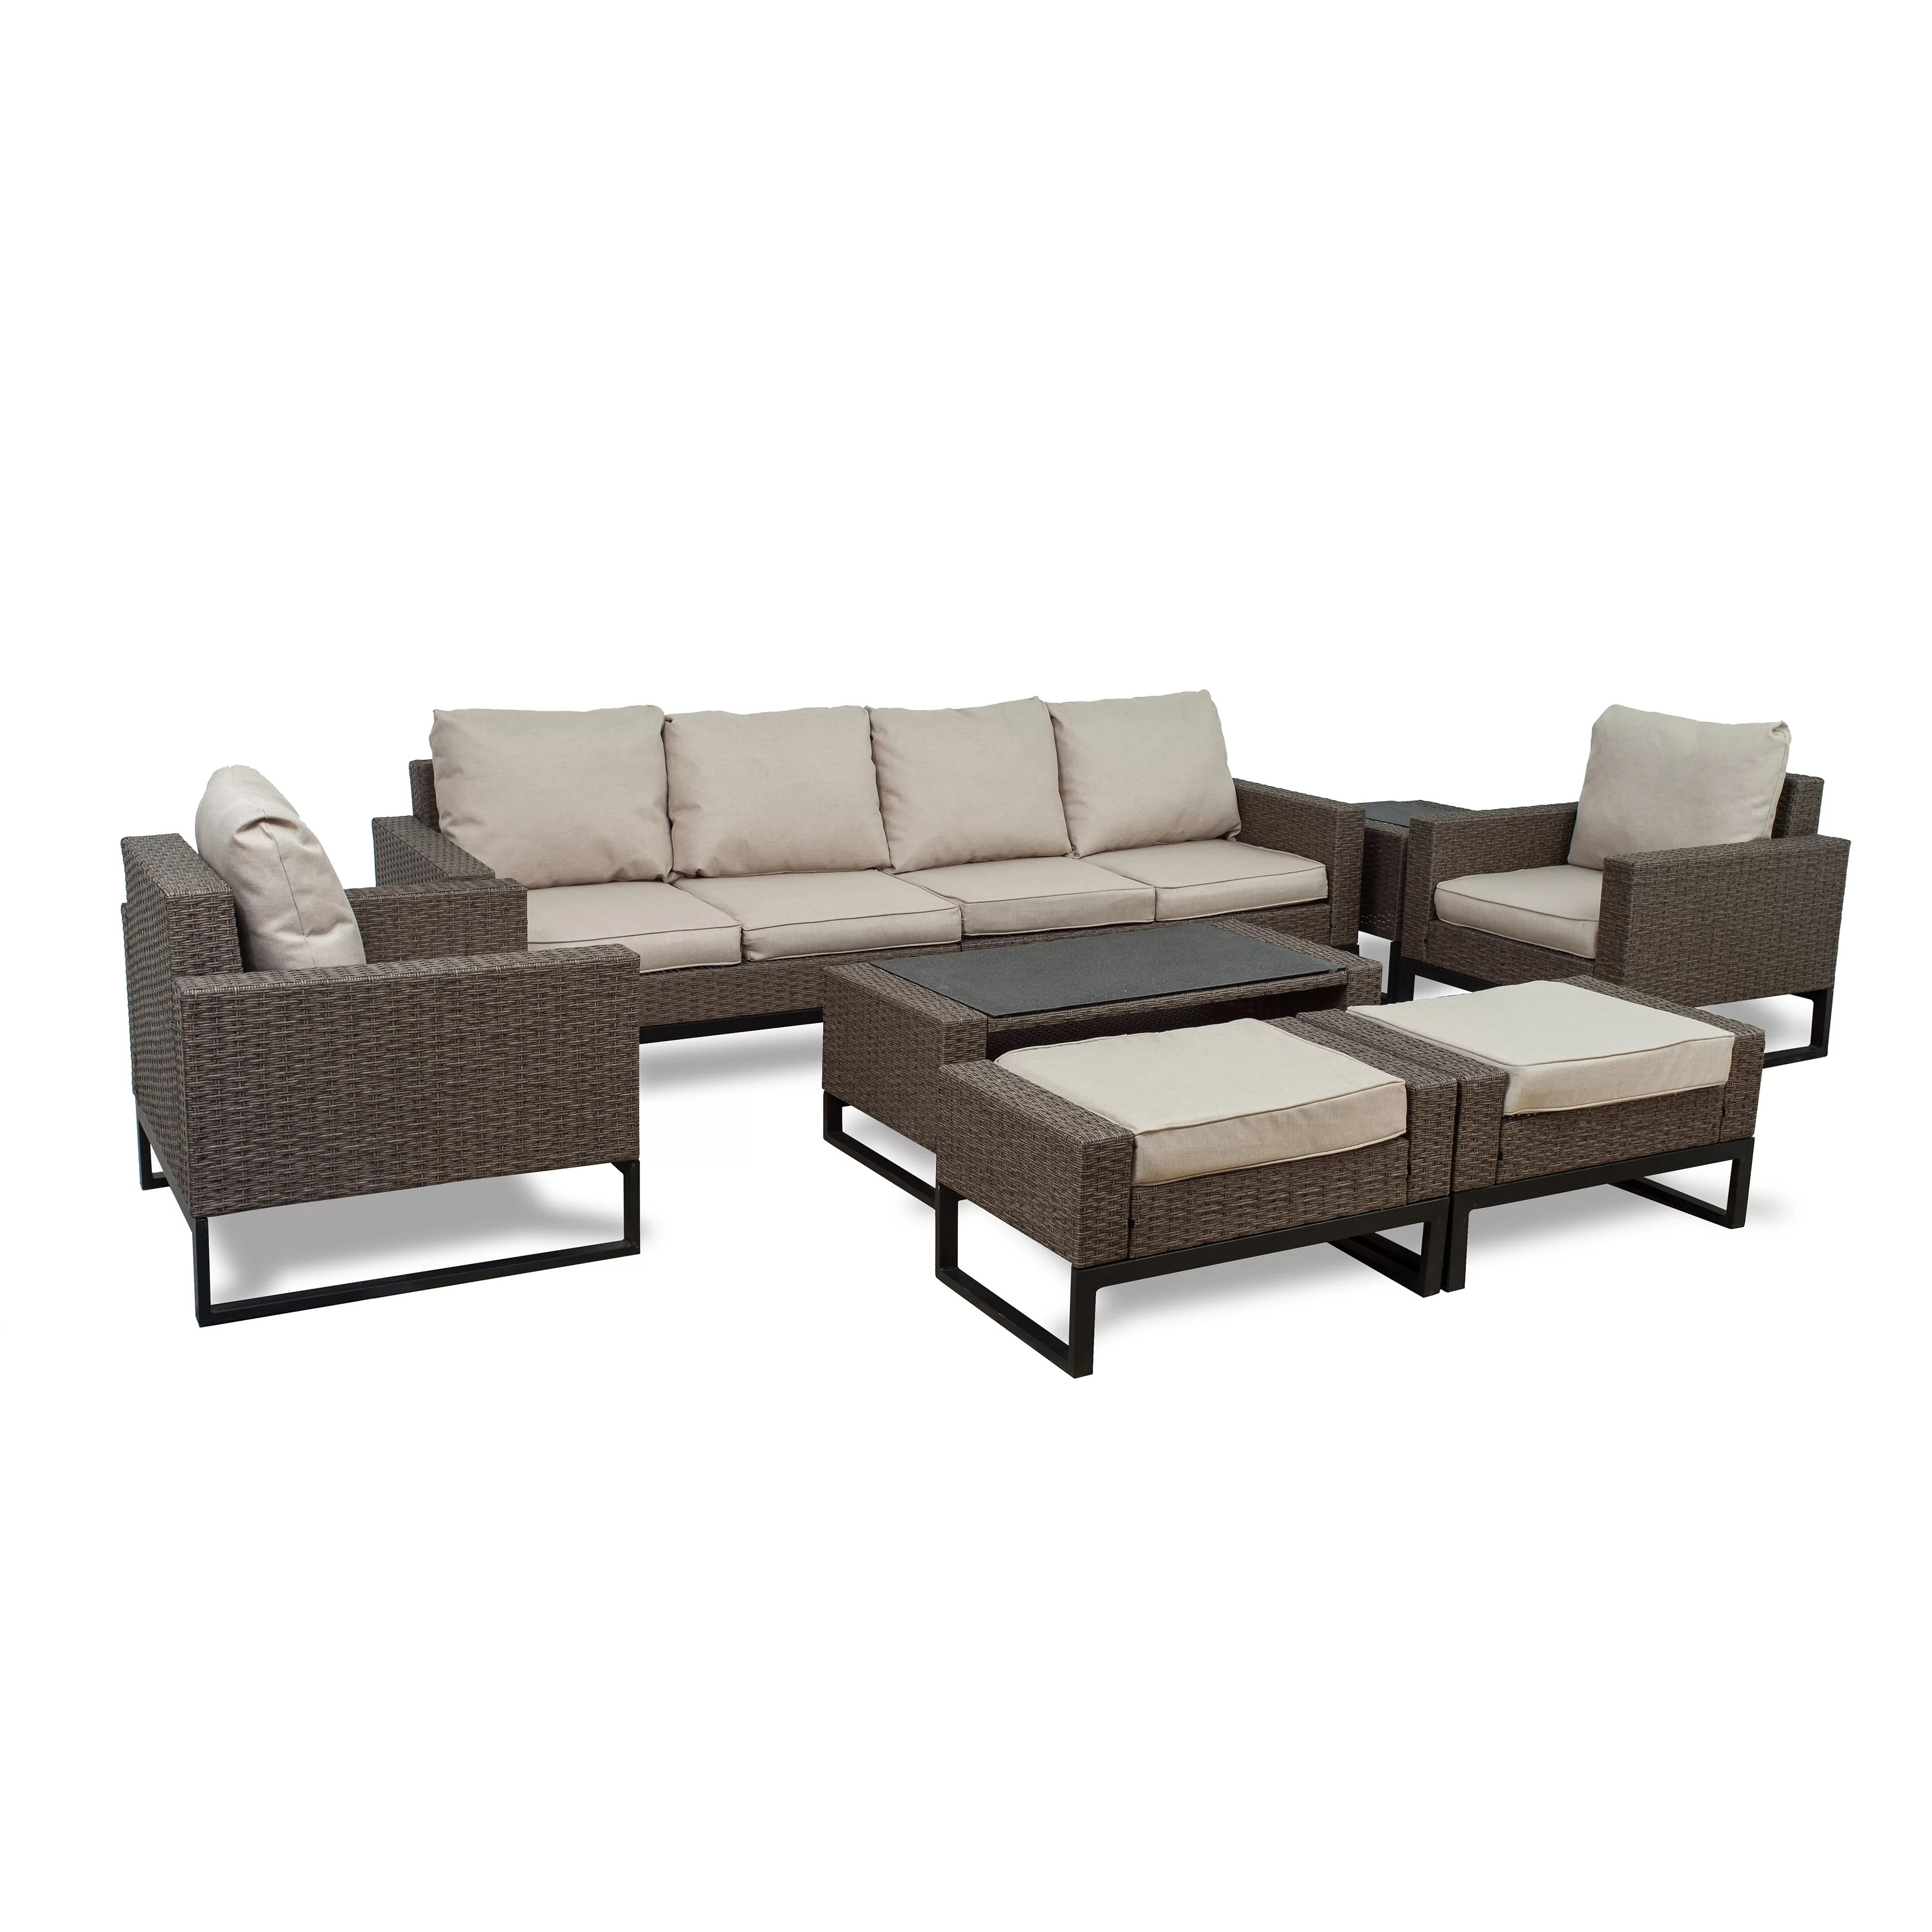 Rattan Sofa Bawden 8 Piece Rattan Sofa Seating Group With Cushions